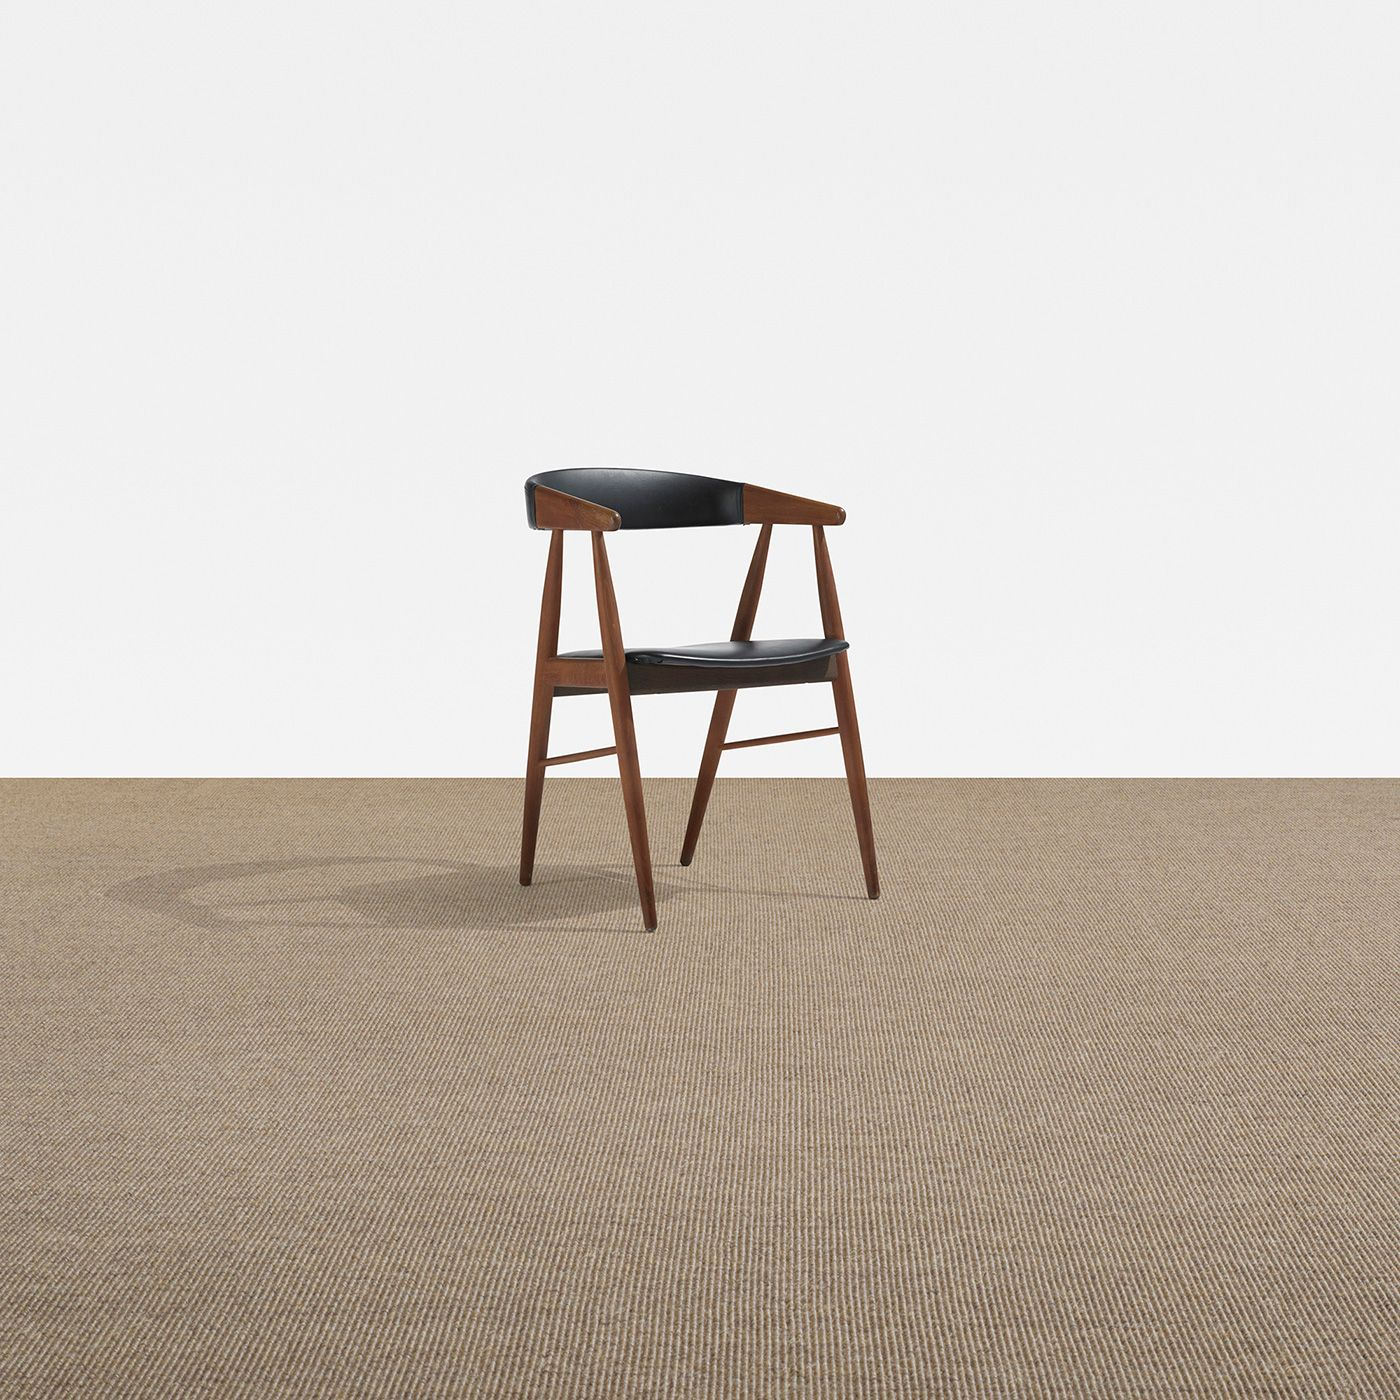 A Bender Madsen And Ejner Larsen Armchair